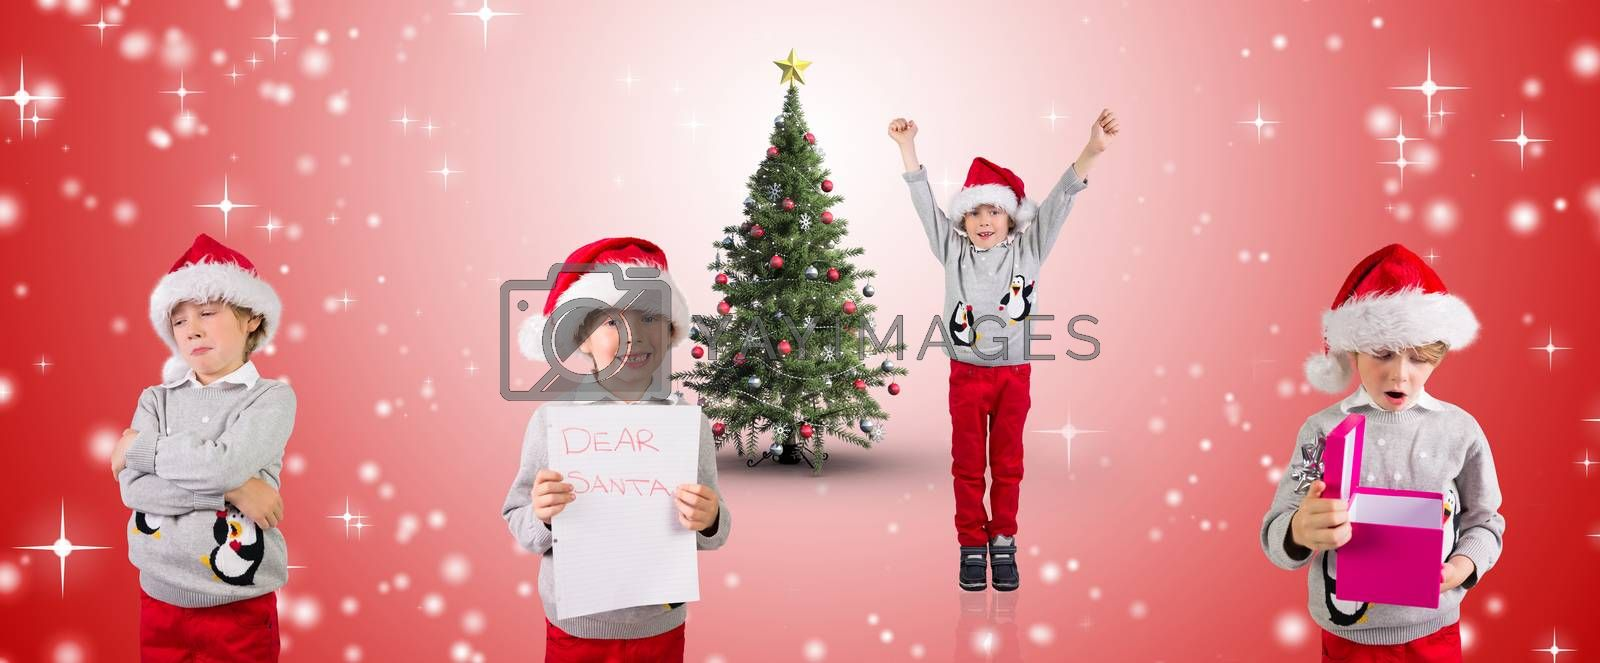 Composite image of different festive boys against white light dots on red